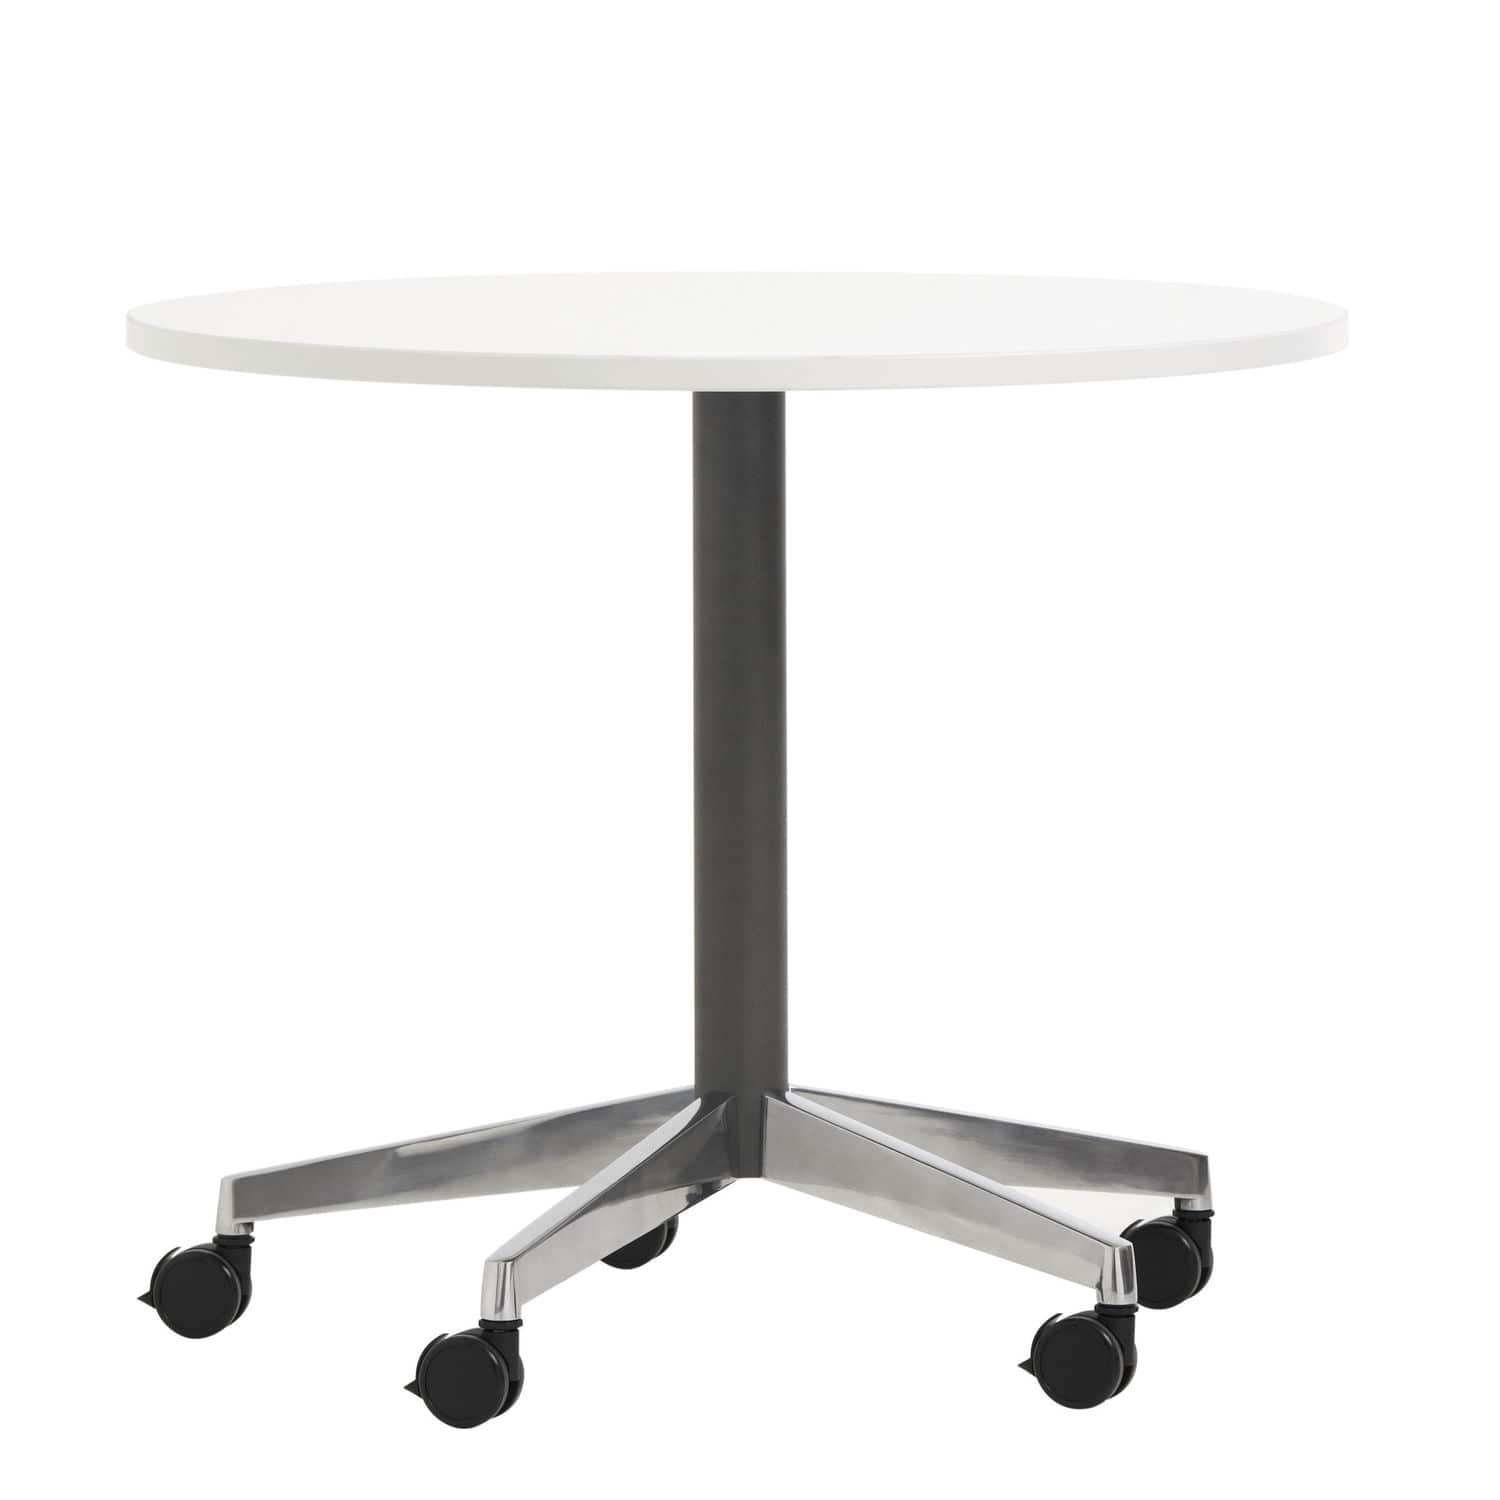 Contemporary bistro table steel melamine laminate TOUCH